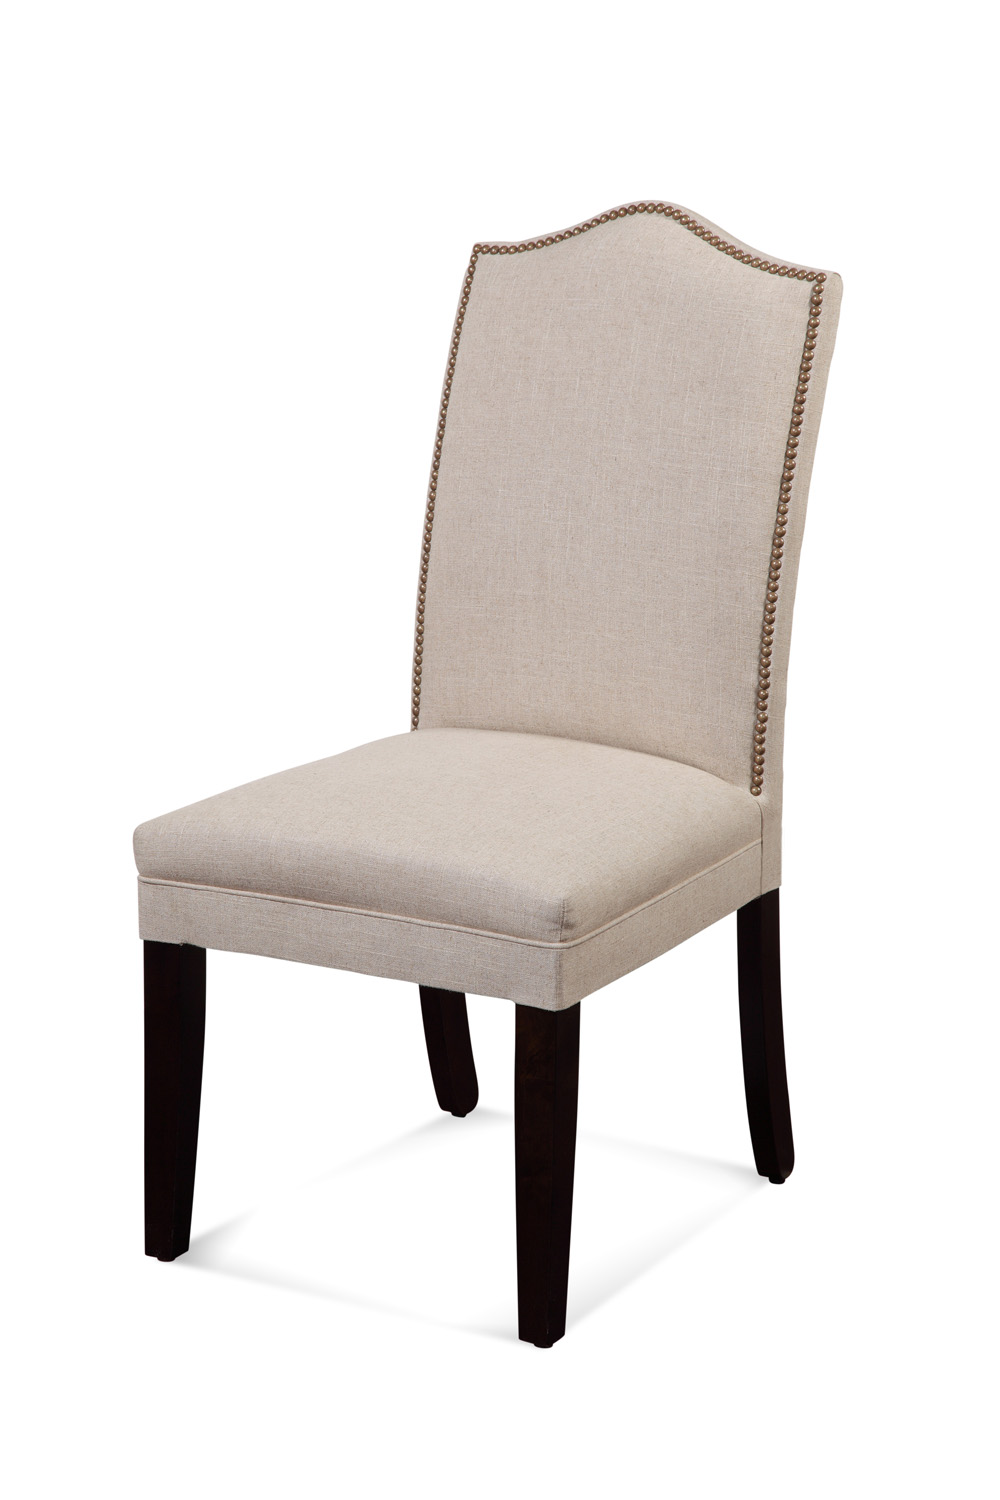 Bassett Camelback Nailhead Parsons Chair in Natural Linen by